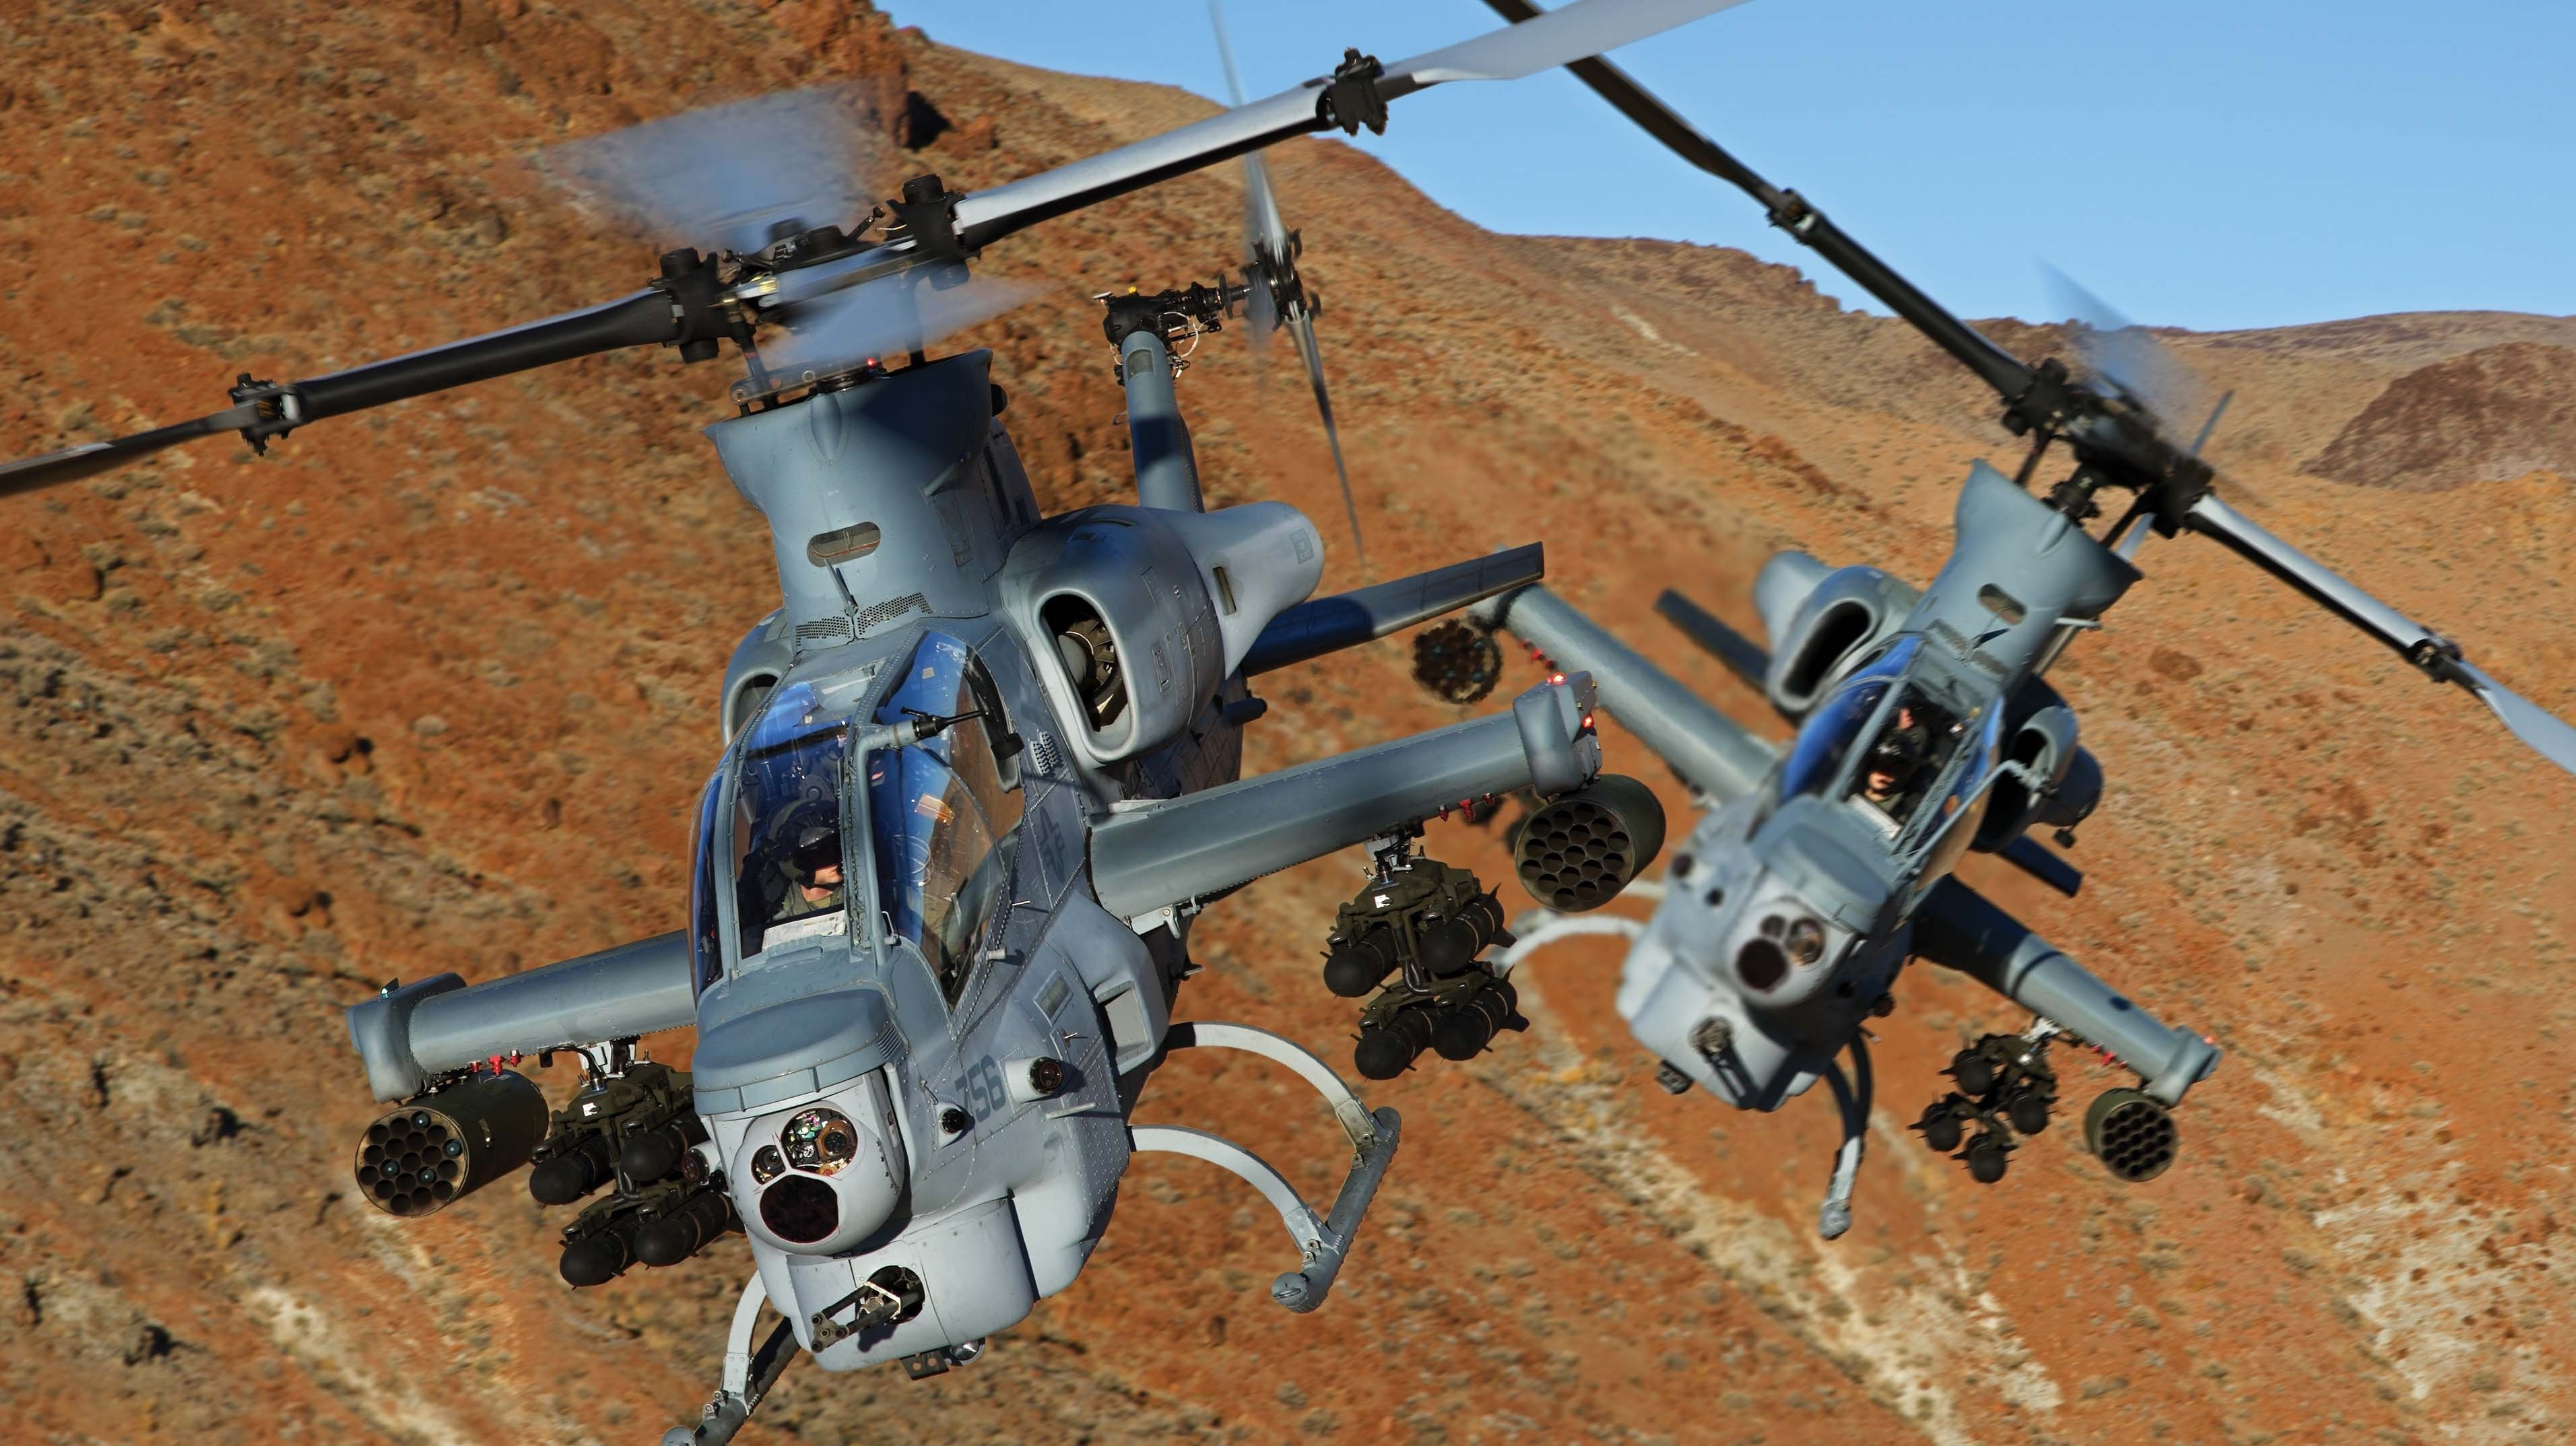 helicopter battle games with Viper Ah 1z Bell Attack Helicopter U S Marine Zulu Cobra 1469 on Ships From Transverse By Steve likewise List of James Bond vehicles in addition Chat Art For Clash Of Clans Game Copy as well Pilots At Fault For April Ch 53e Crash Investigation Finds also Patrol transport.